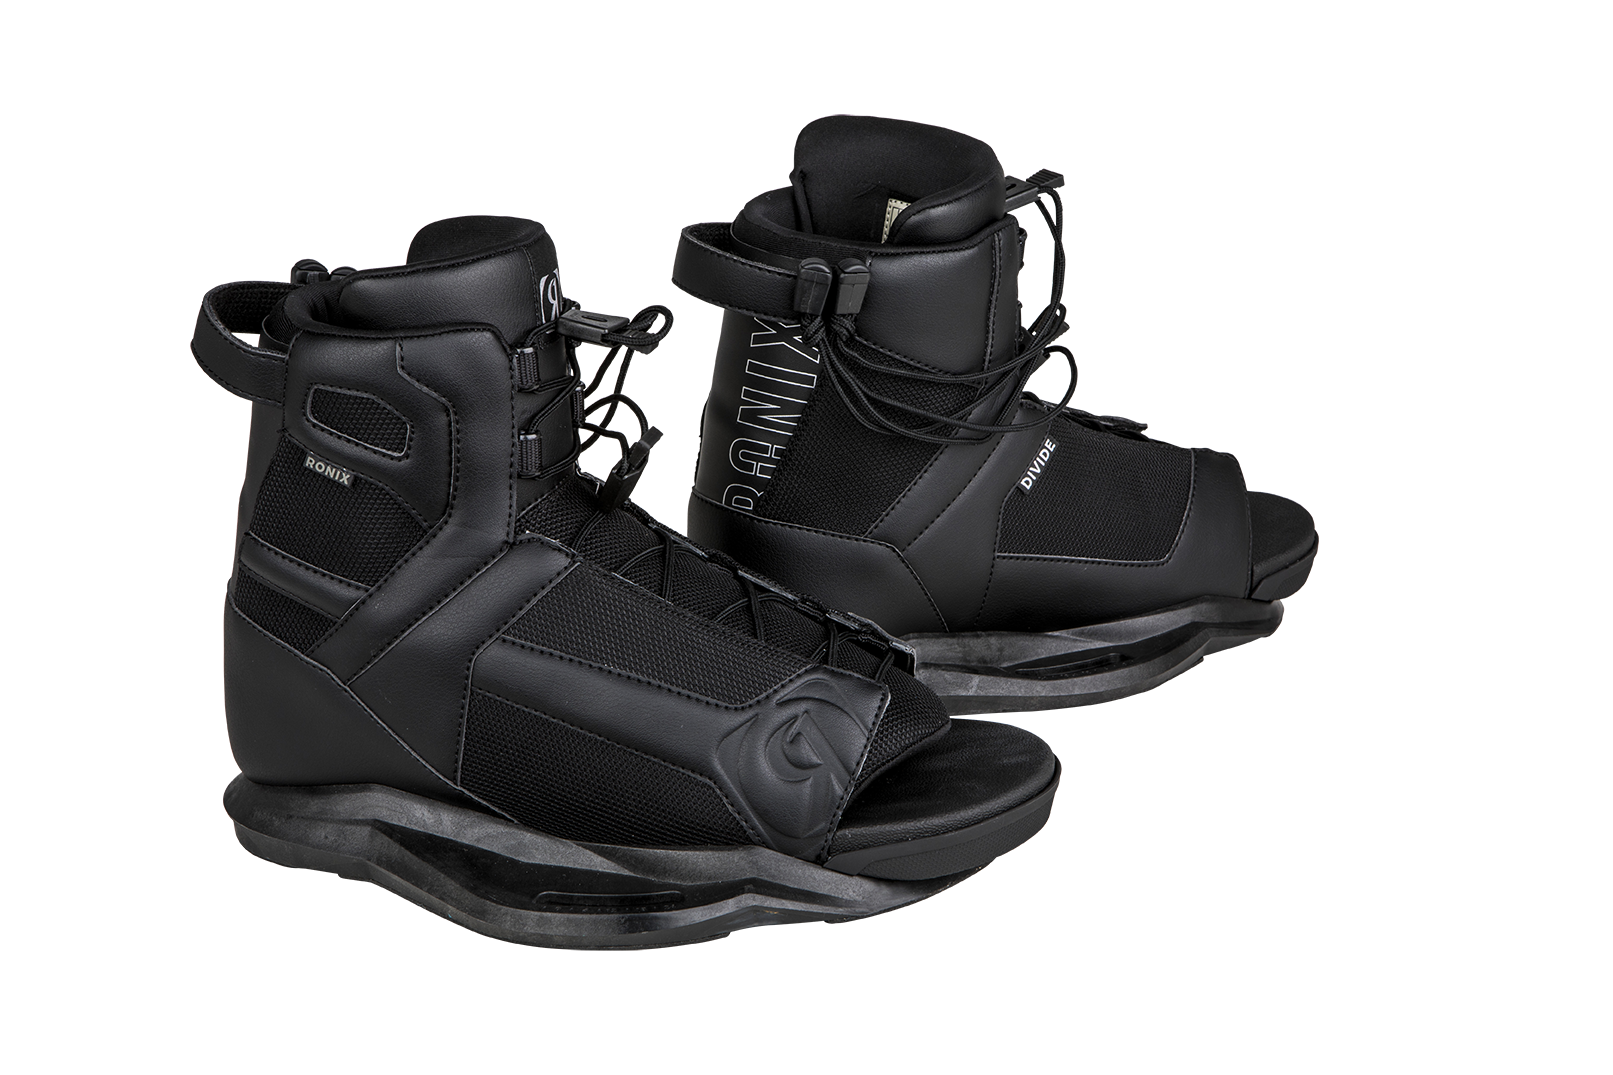 2019 Ronix Divide Wakeboard Boots